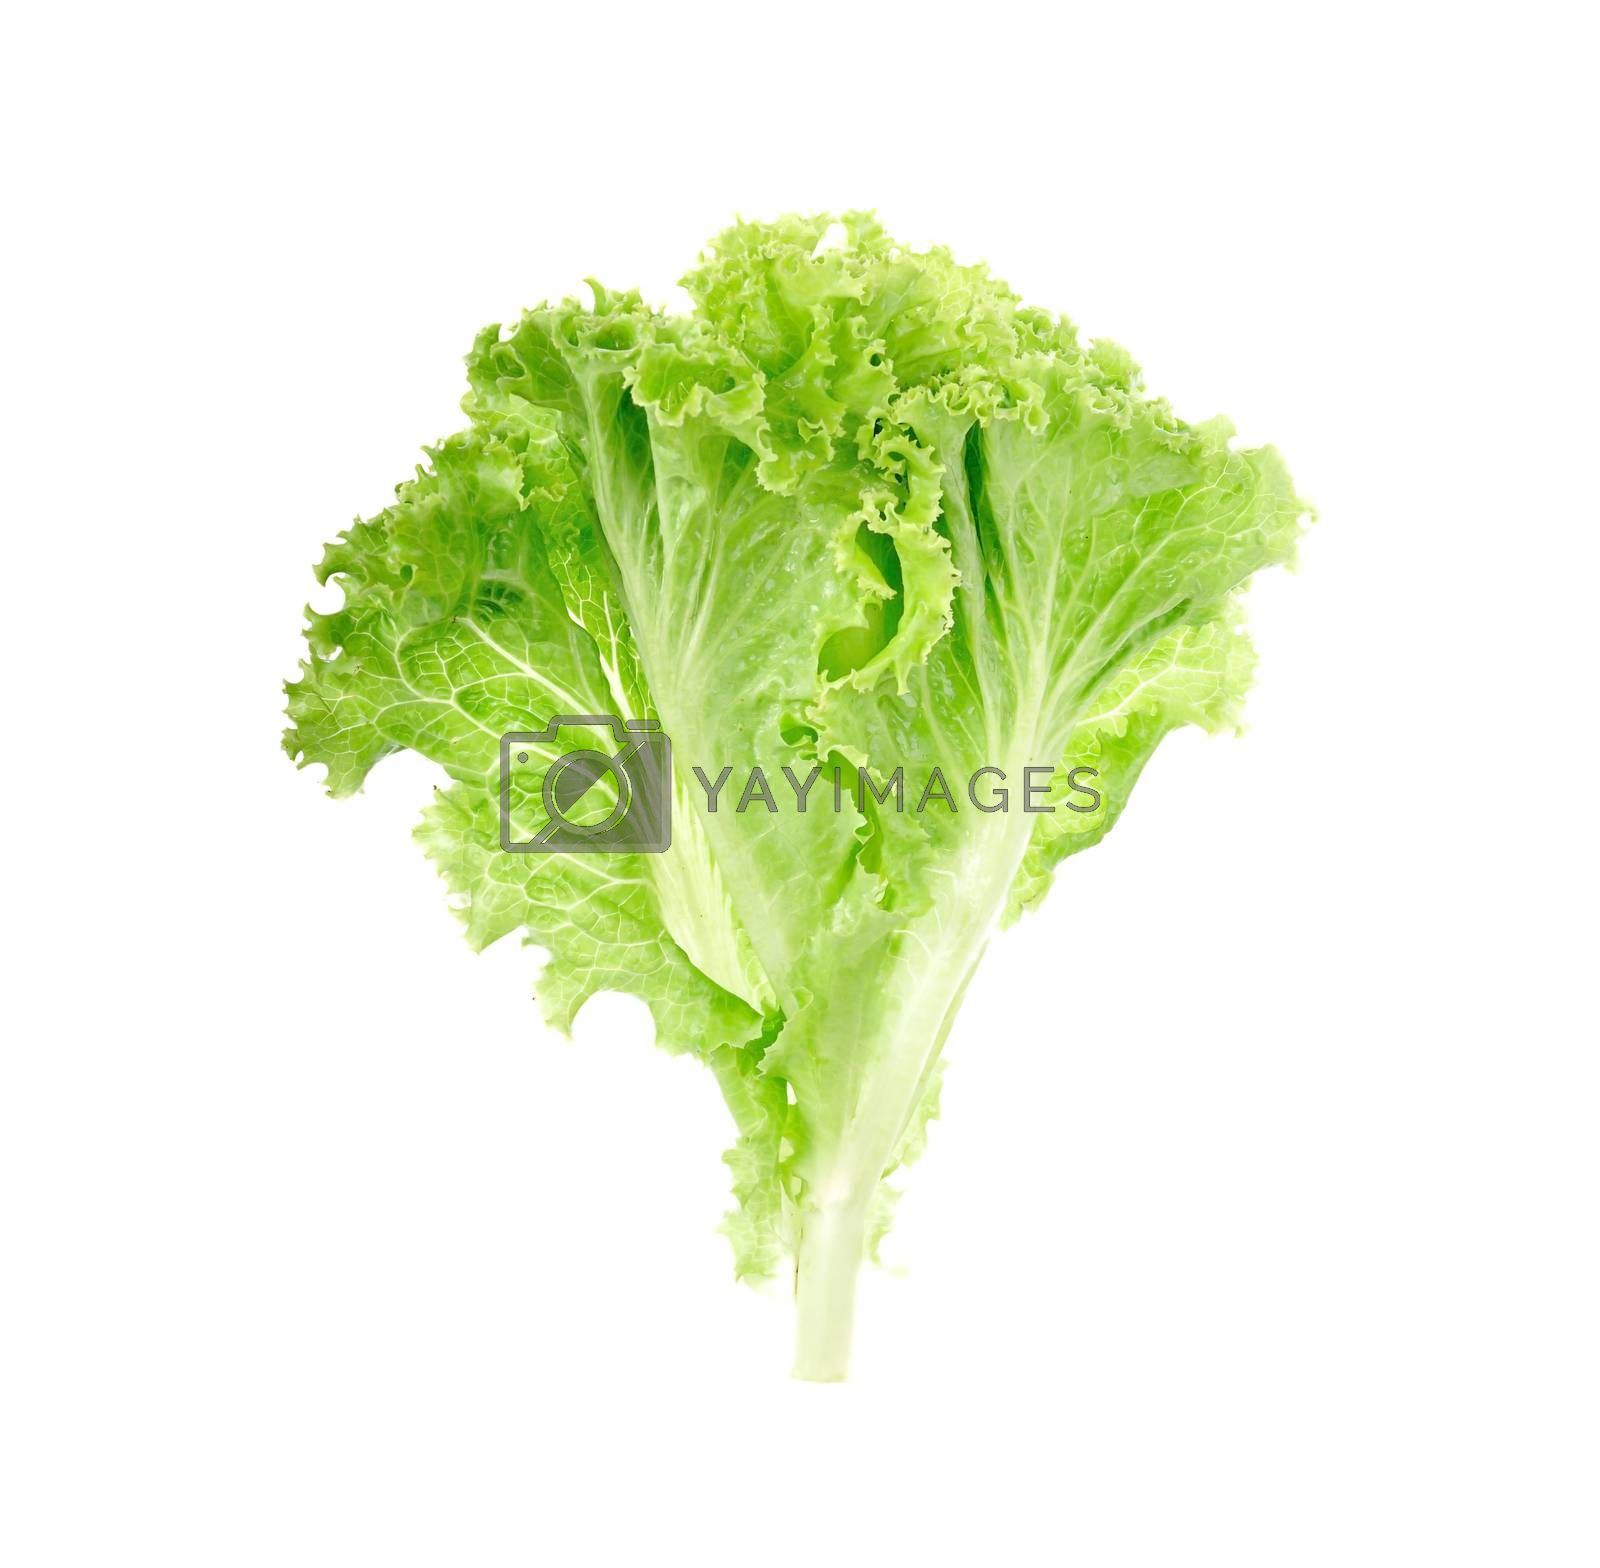 salads leaves close up isolated on white background